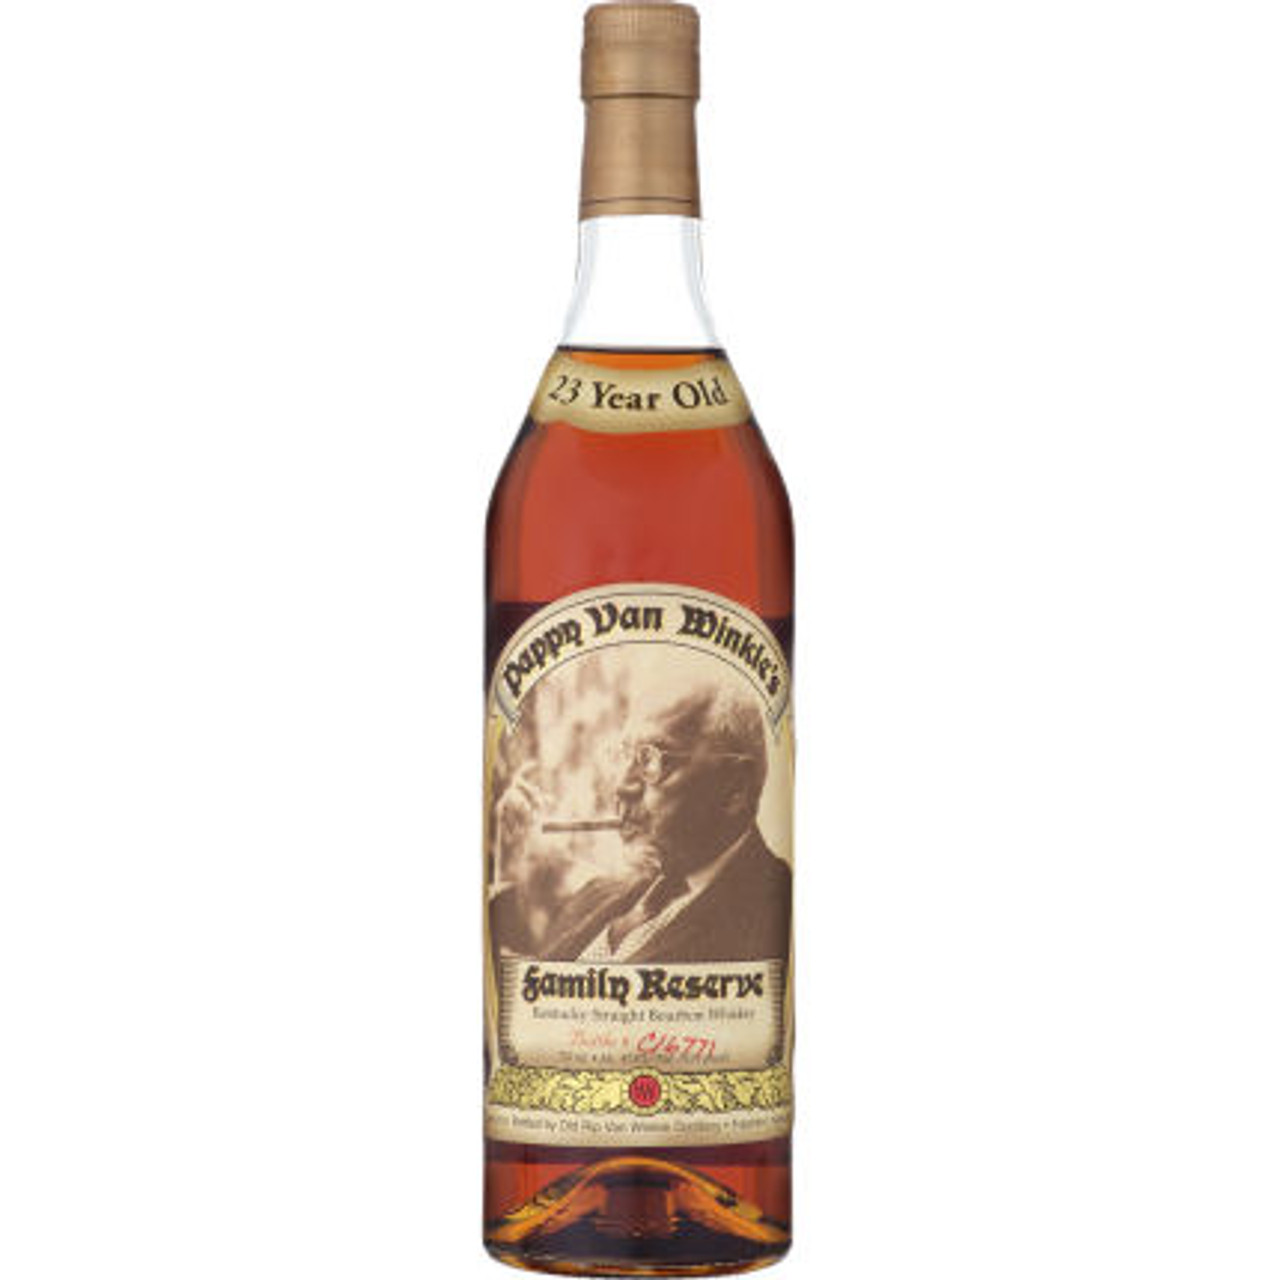 Pappy Van Winkle's Family Reserve 23 Year Old Bourbon Whiskey 750ml